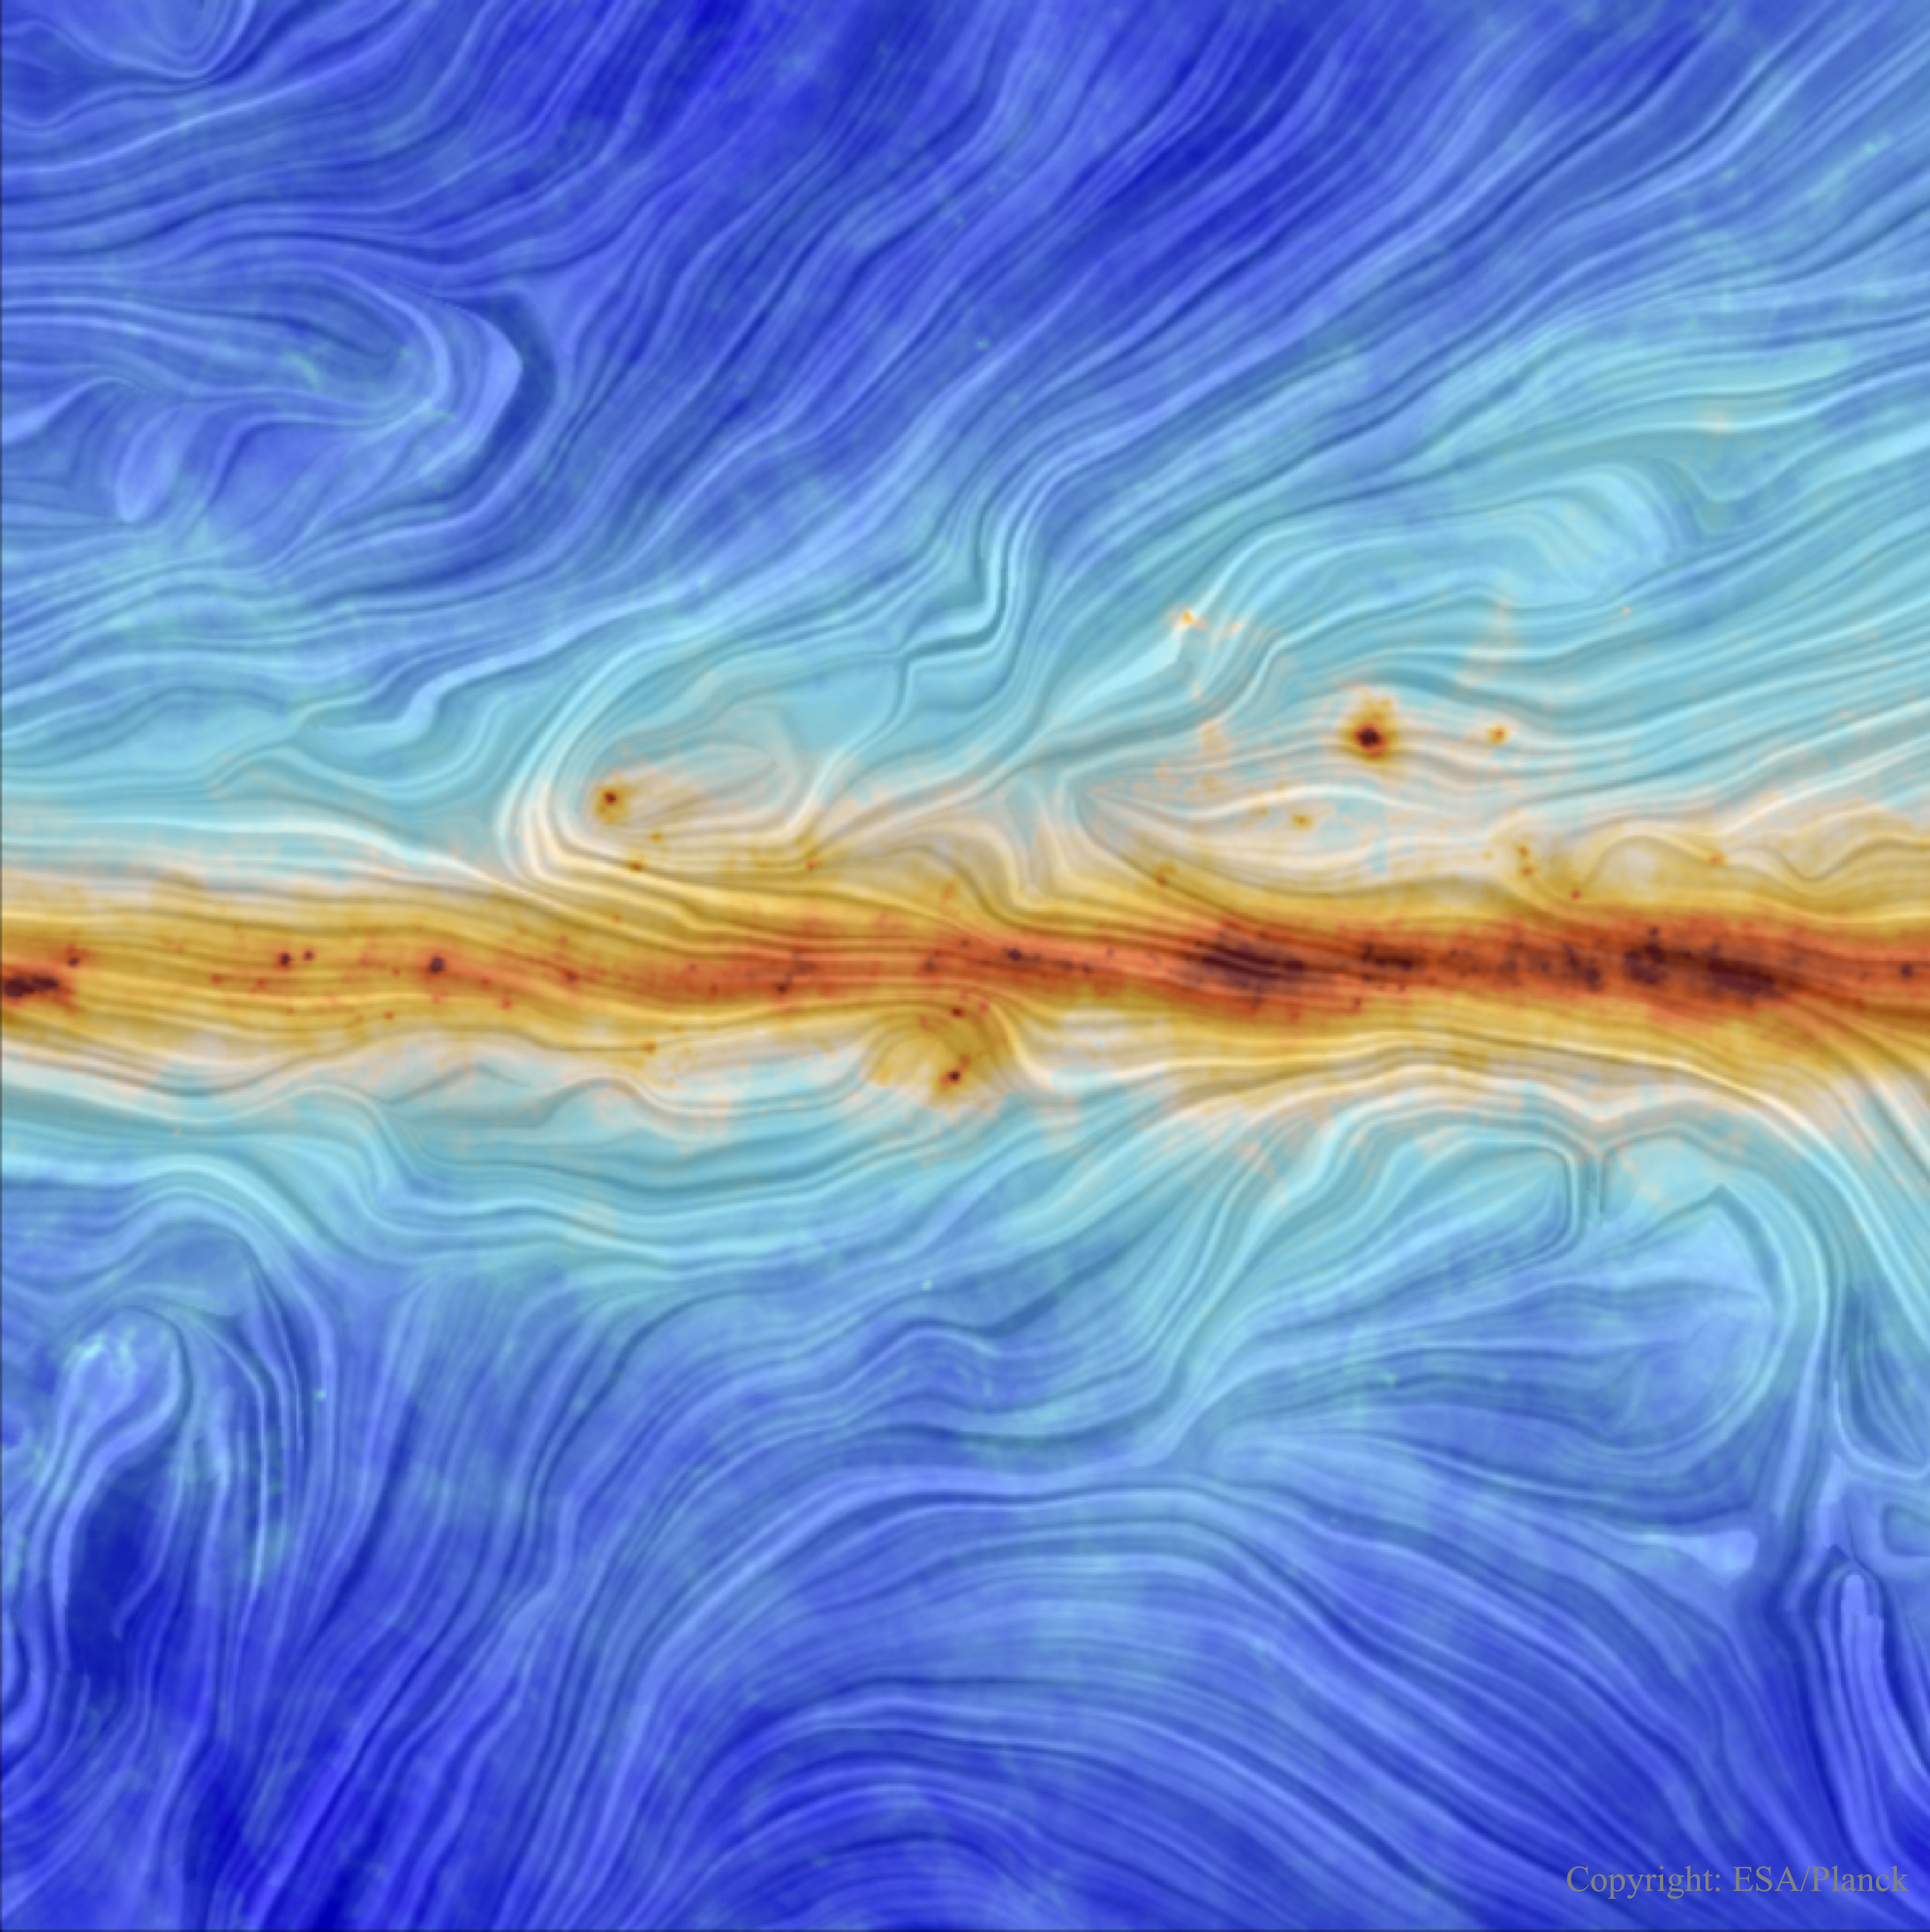 Our Galaxys Magnetic Field from Planck